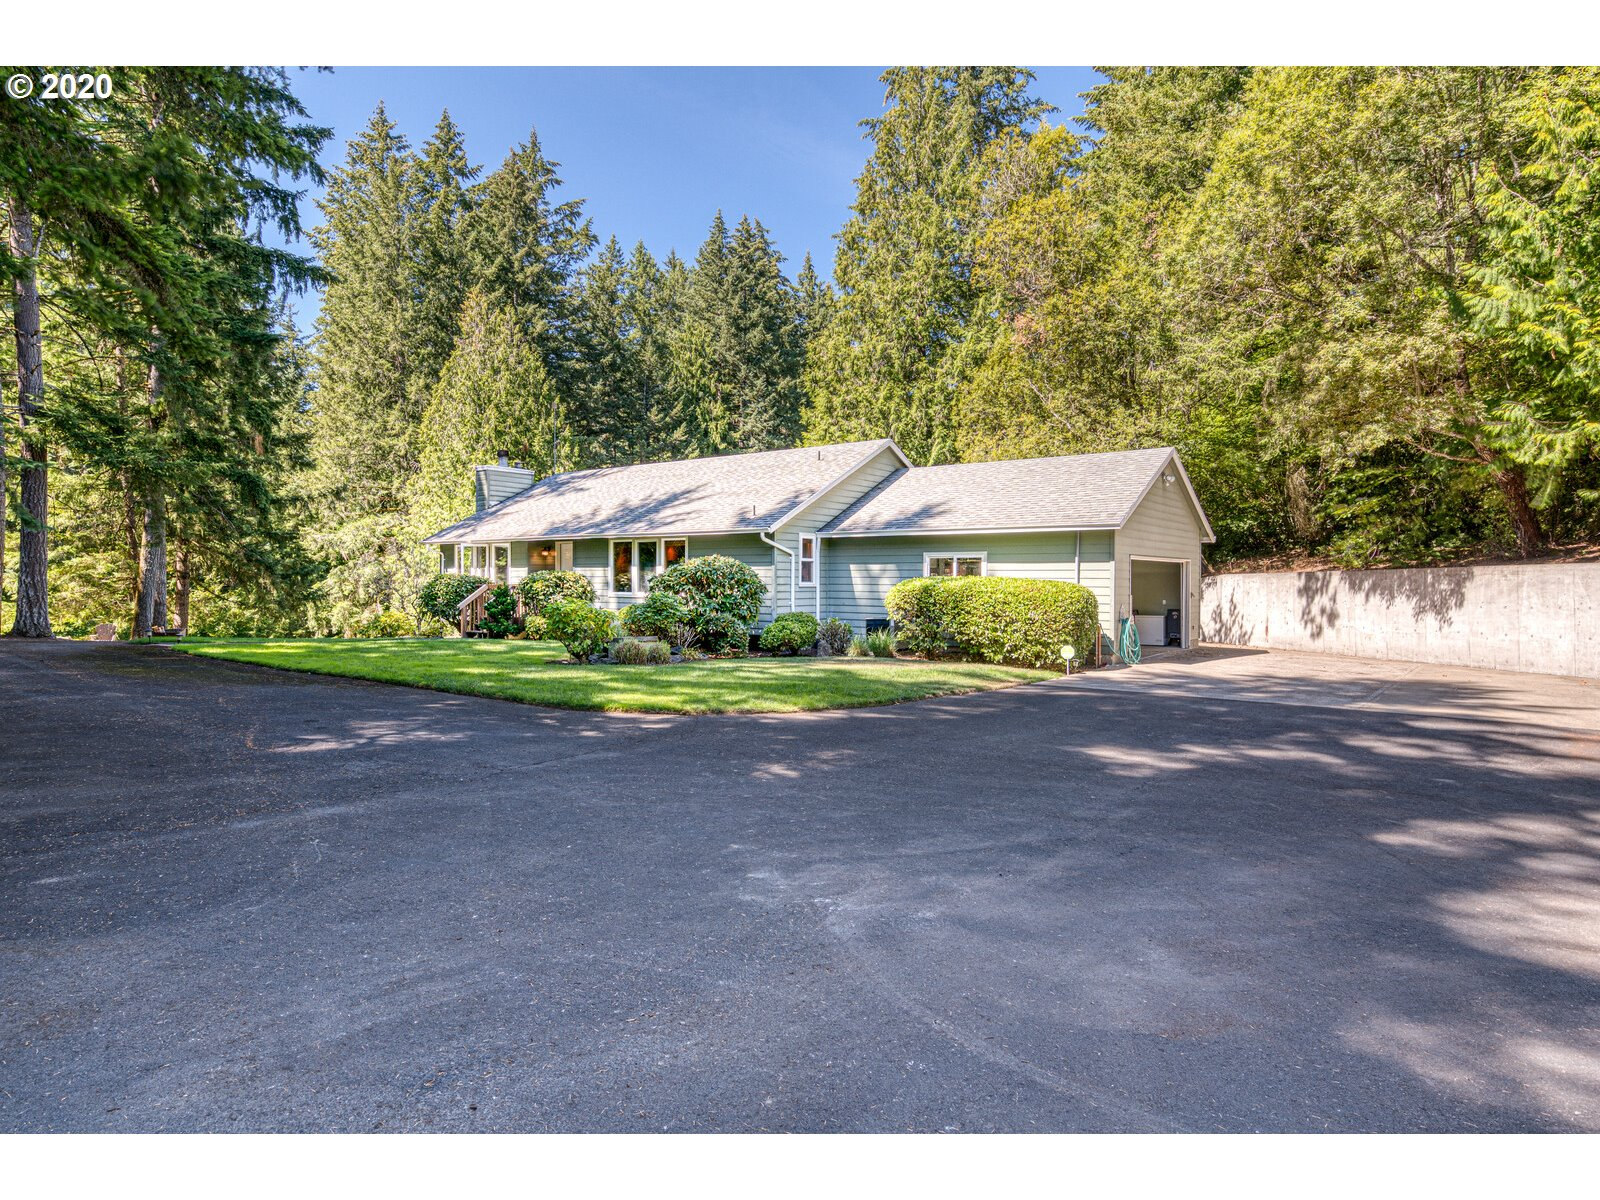 Seclusion at its Best! Gorgeous remodeled gourmet kitchen Master bedroom on the main floor. Very open floor plan with plenty of windows to enjoy the beautiful property. 3 full RV hookups. Canby Schools. Must see to appreciate!